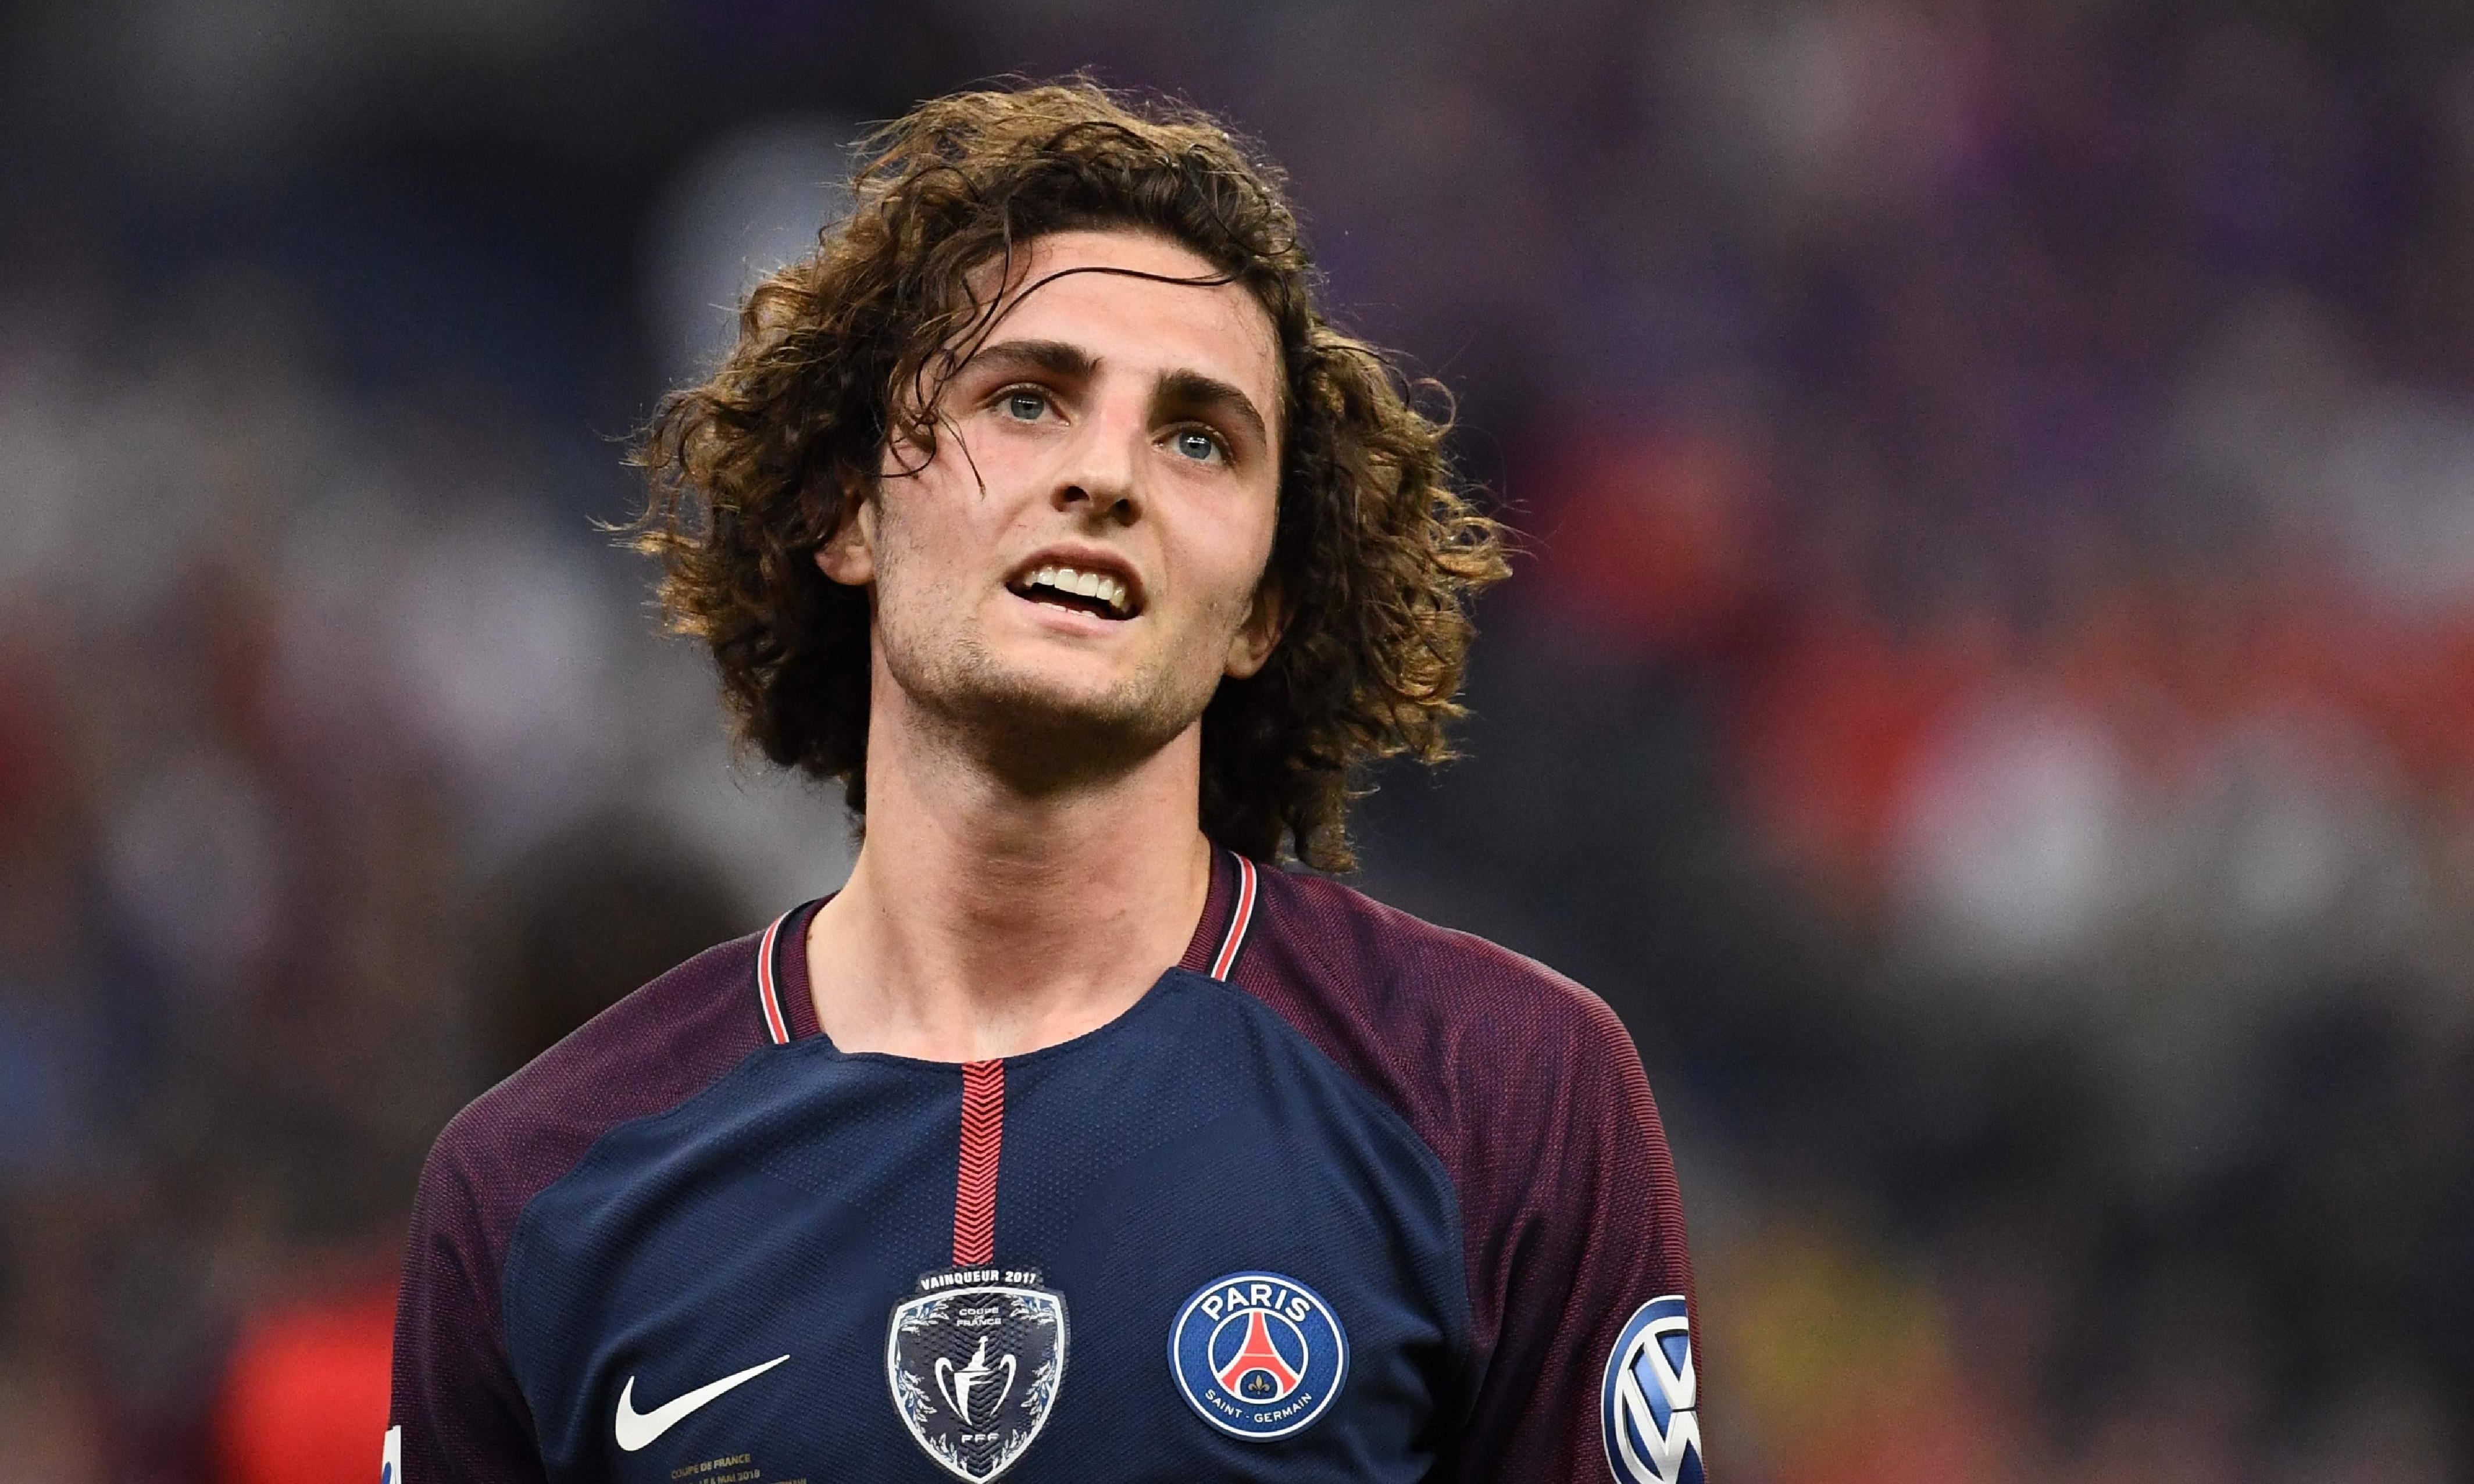 Adrien Rabiot: the golden boy who became PSG's French football outcast